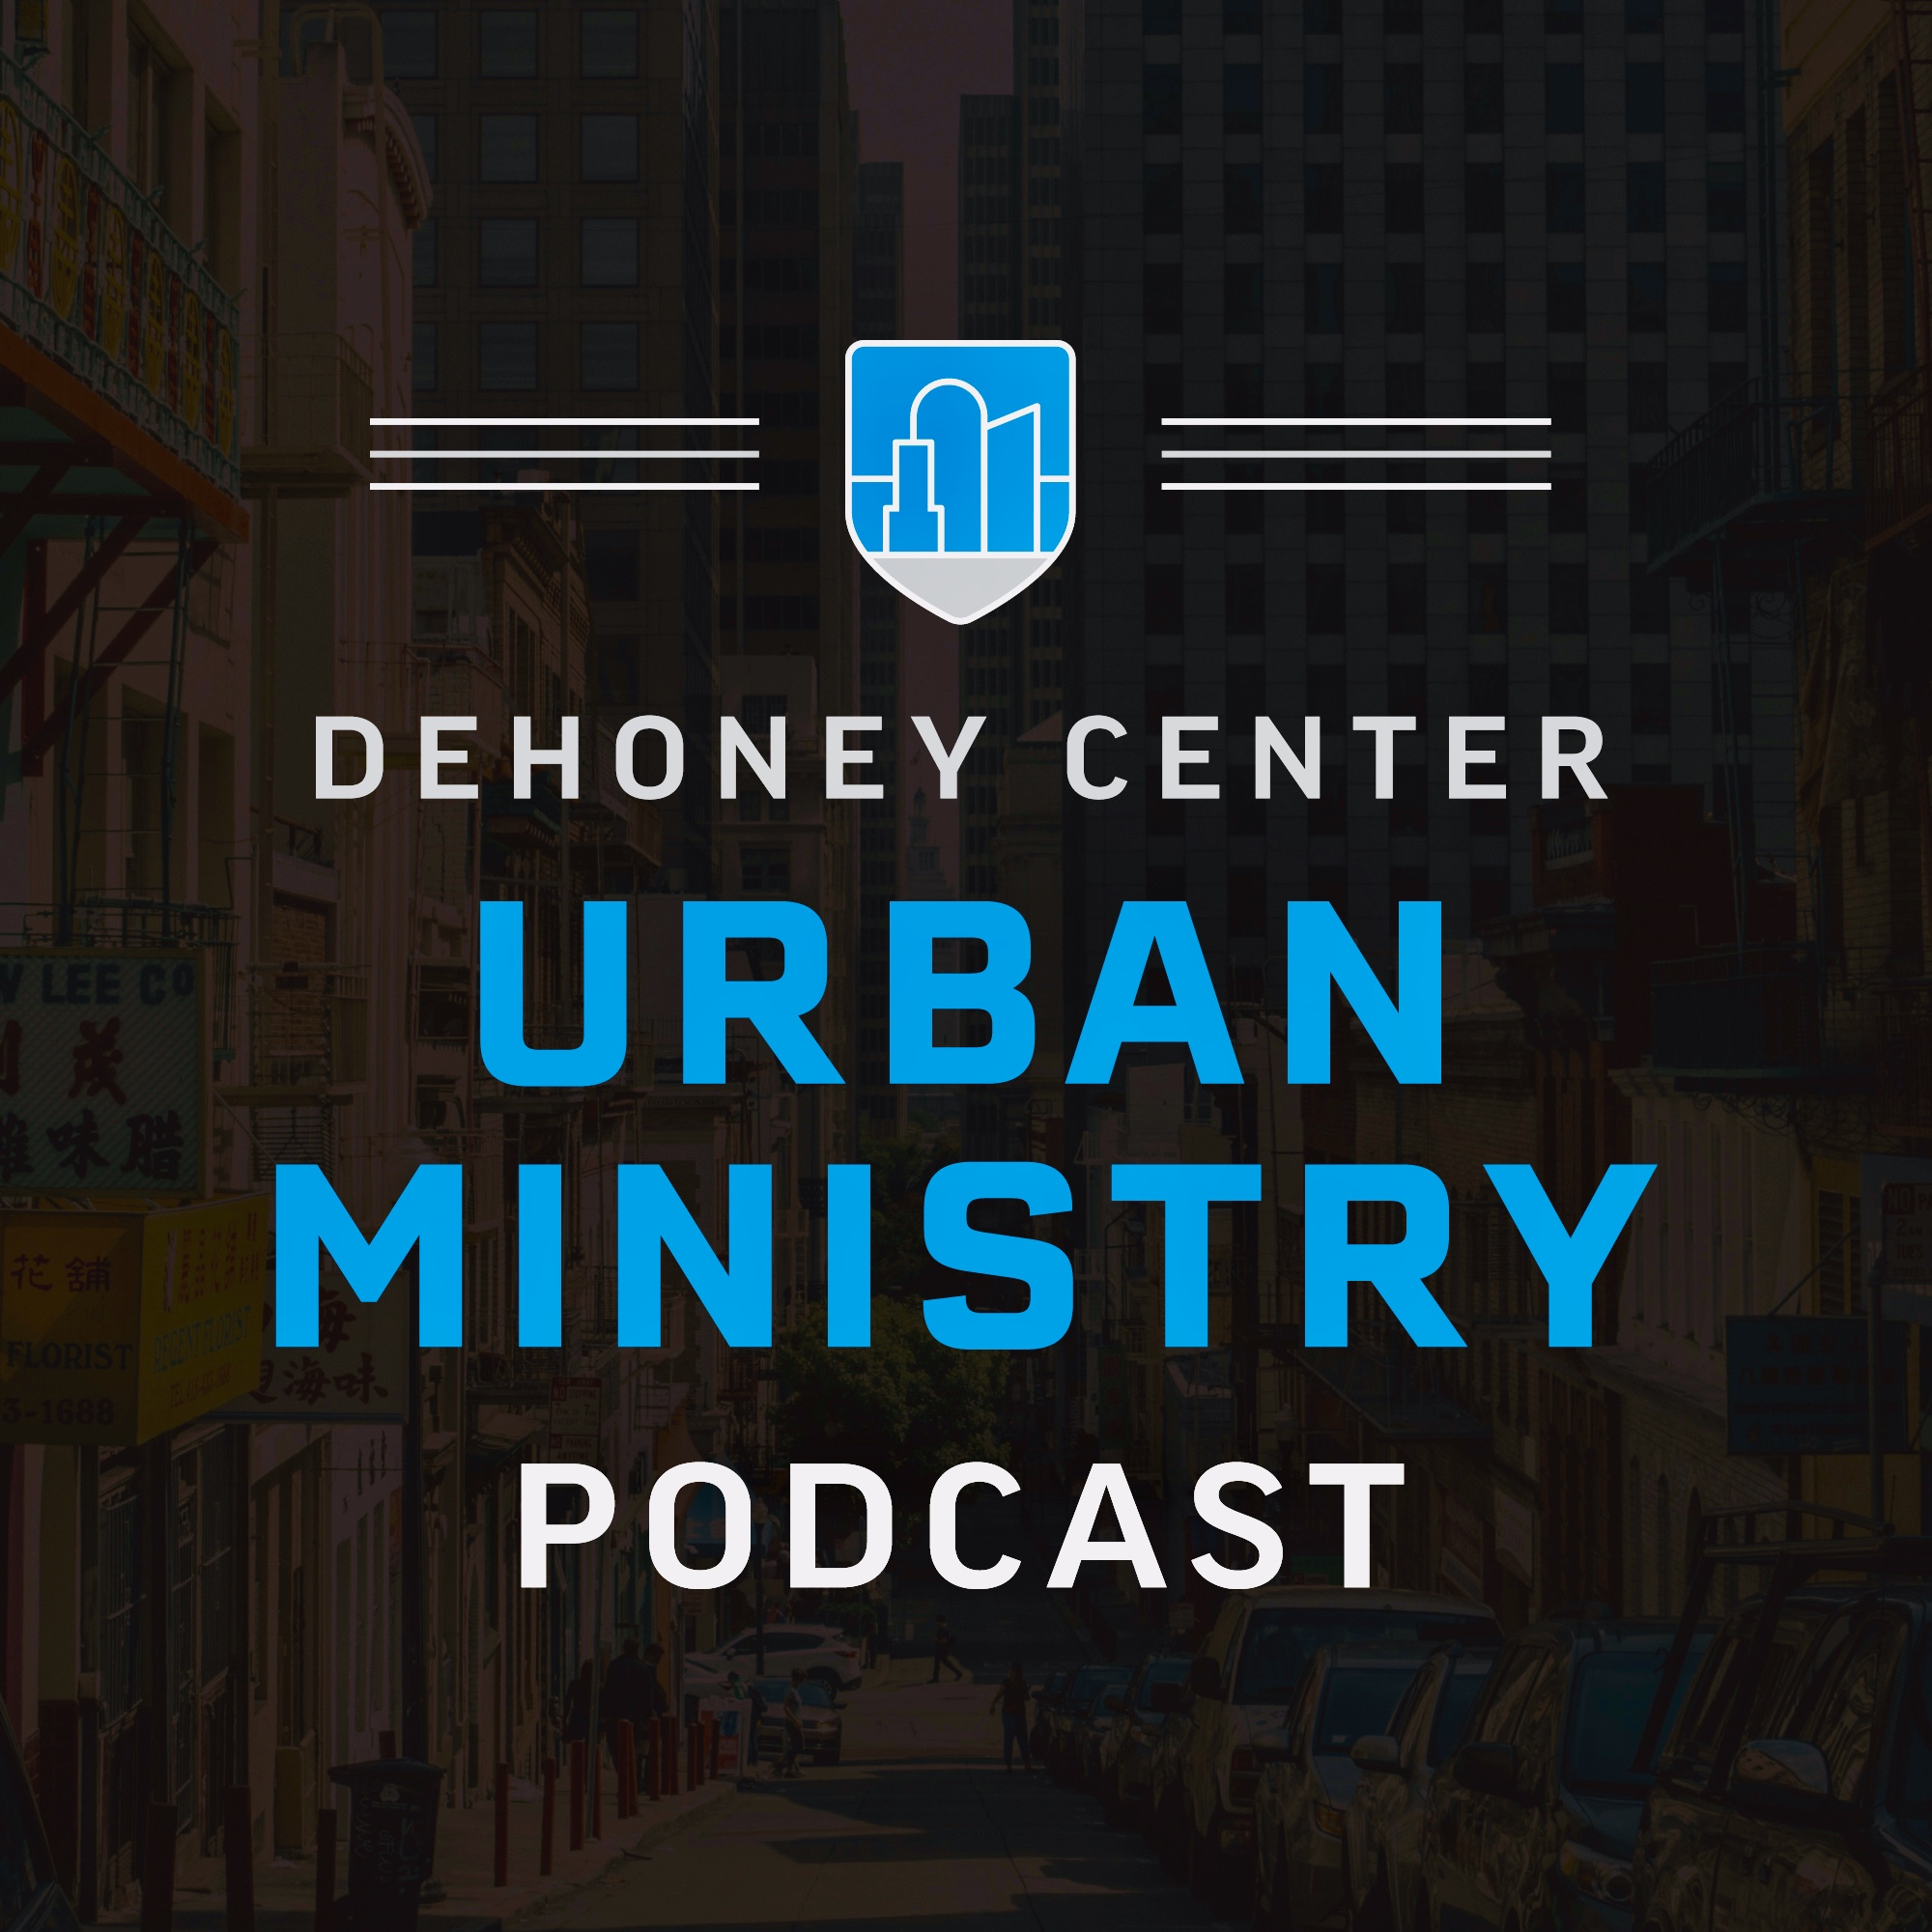 The Urban Ministry Podcast